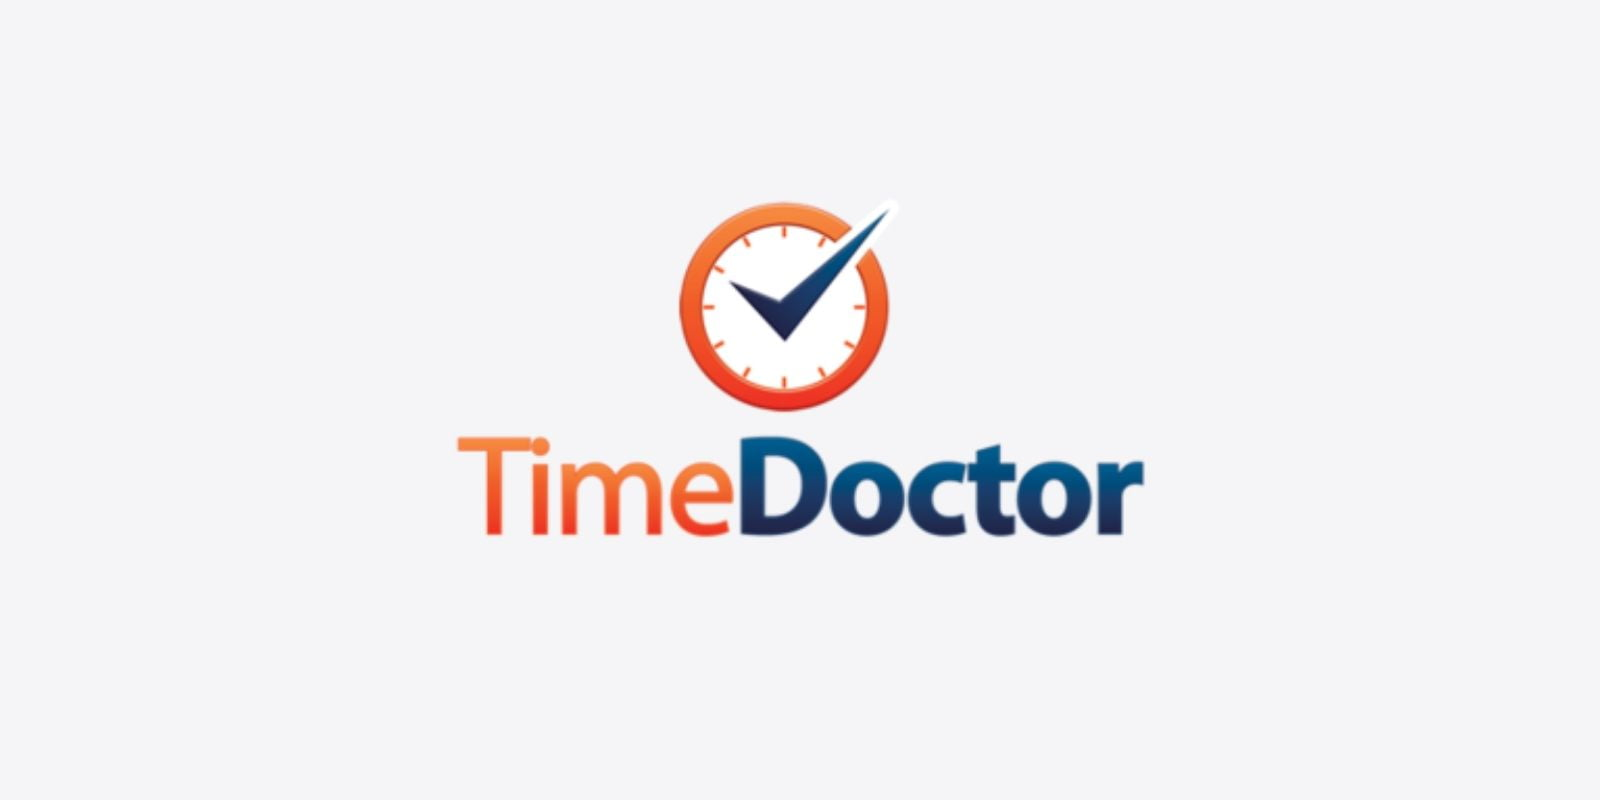 Time Doctor logo